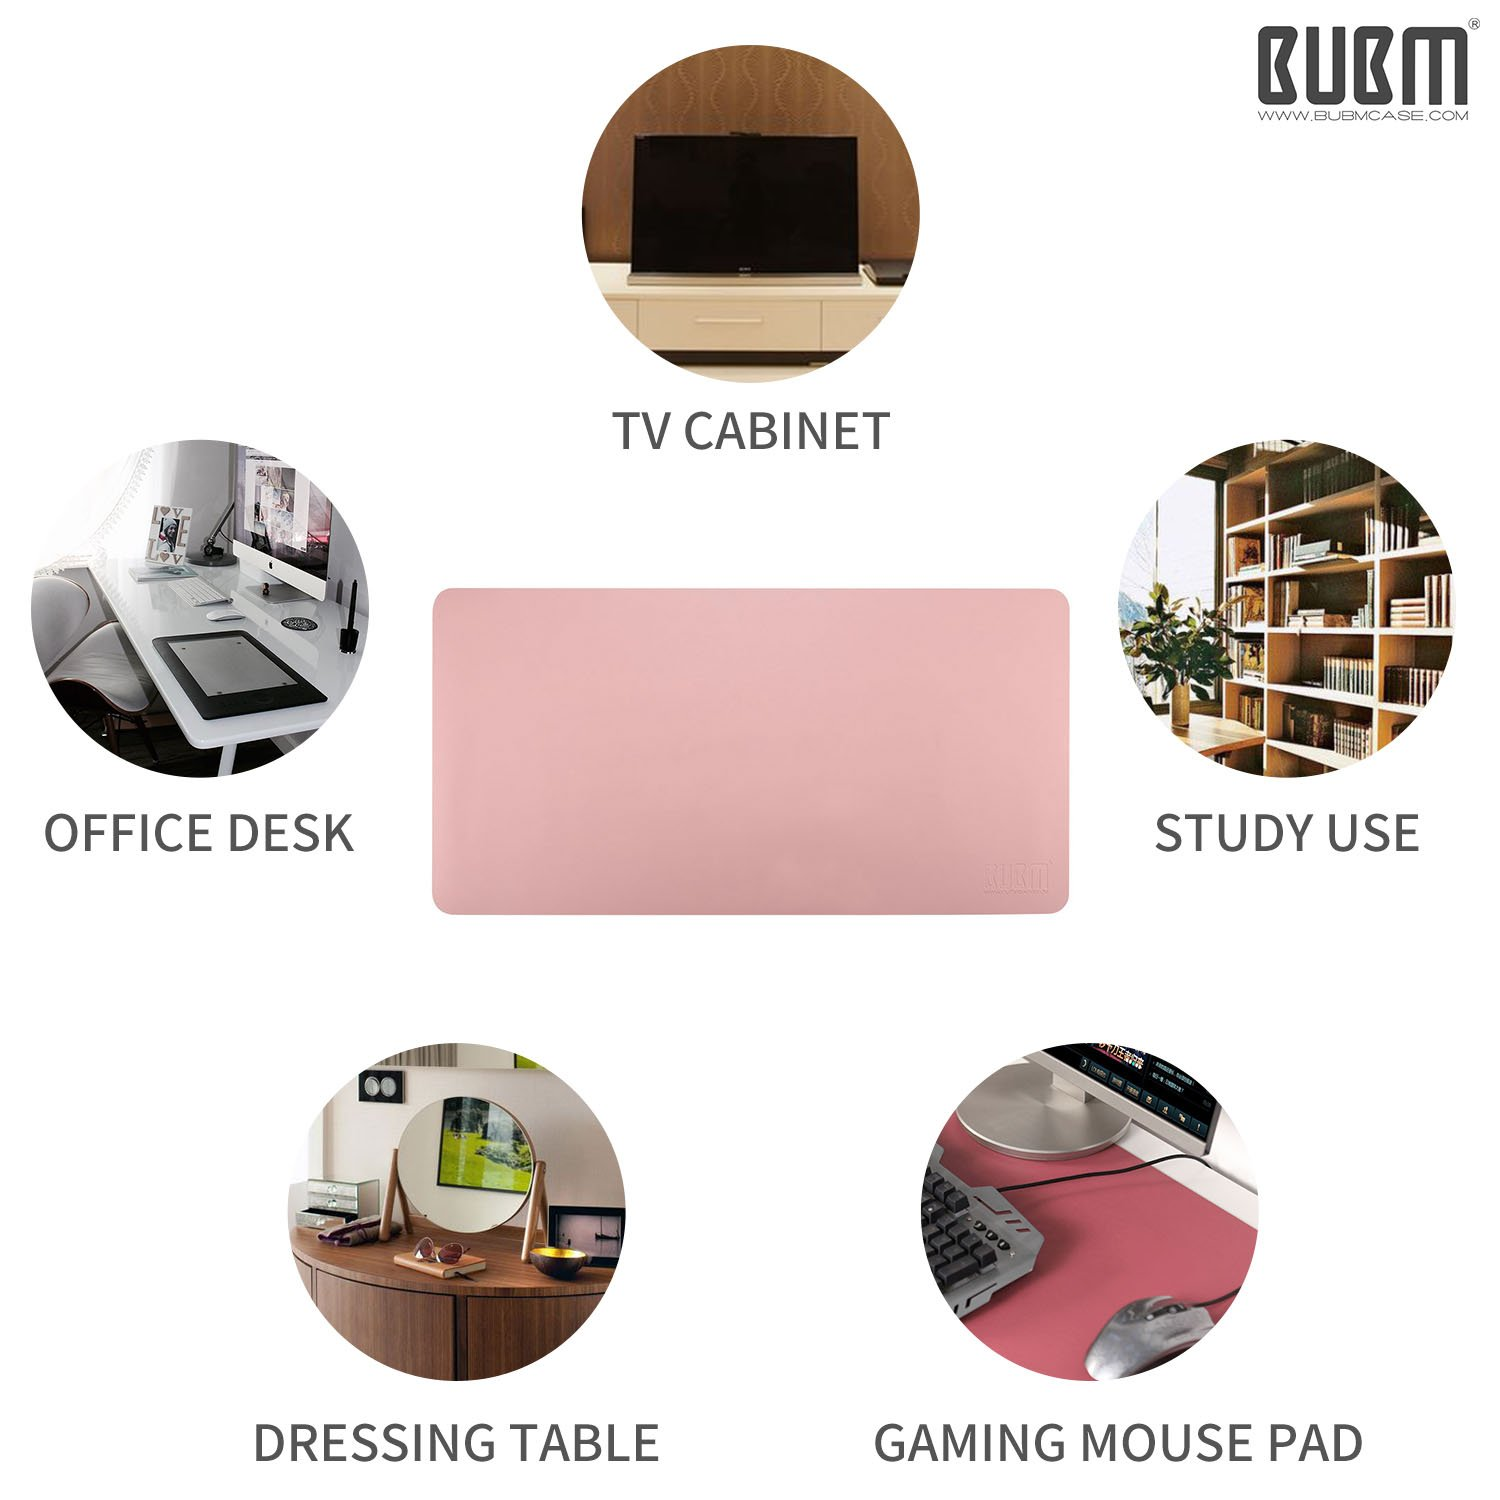 Desk Pad Mouse Pad/Mat - BUBM Large Gaming Mouse Pad Desktop Pad Protector PU Leather Laptop pad for Office and Home,Waterproof and Smooth,2 Year Warranty(35.4'' 17.7'', Pink+Silver) by BUBM (Image #6)